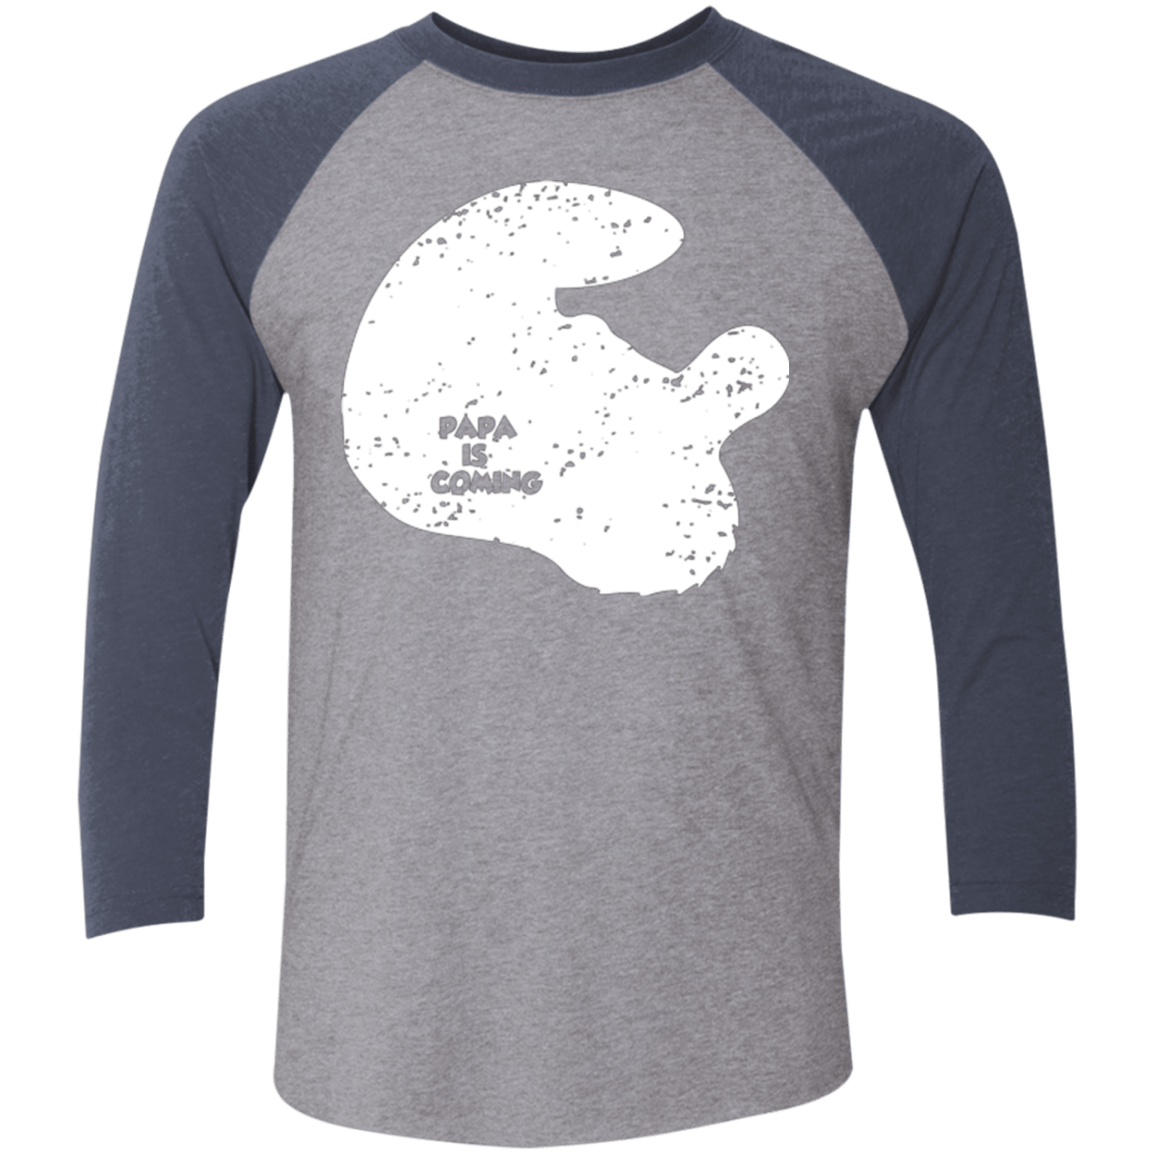 T-Shirts Premium Heather/ Vintage Navy / X-Small Papa Is Coming Men's Triblend 3/4 Sleeve